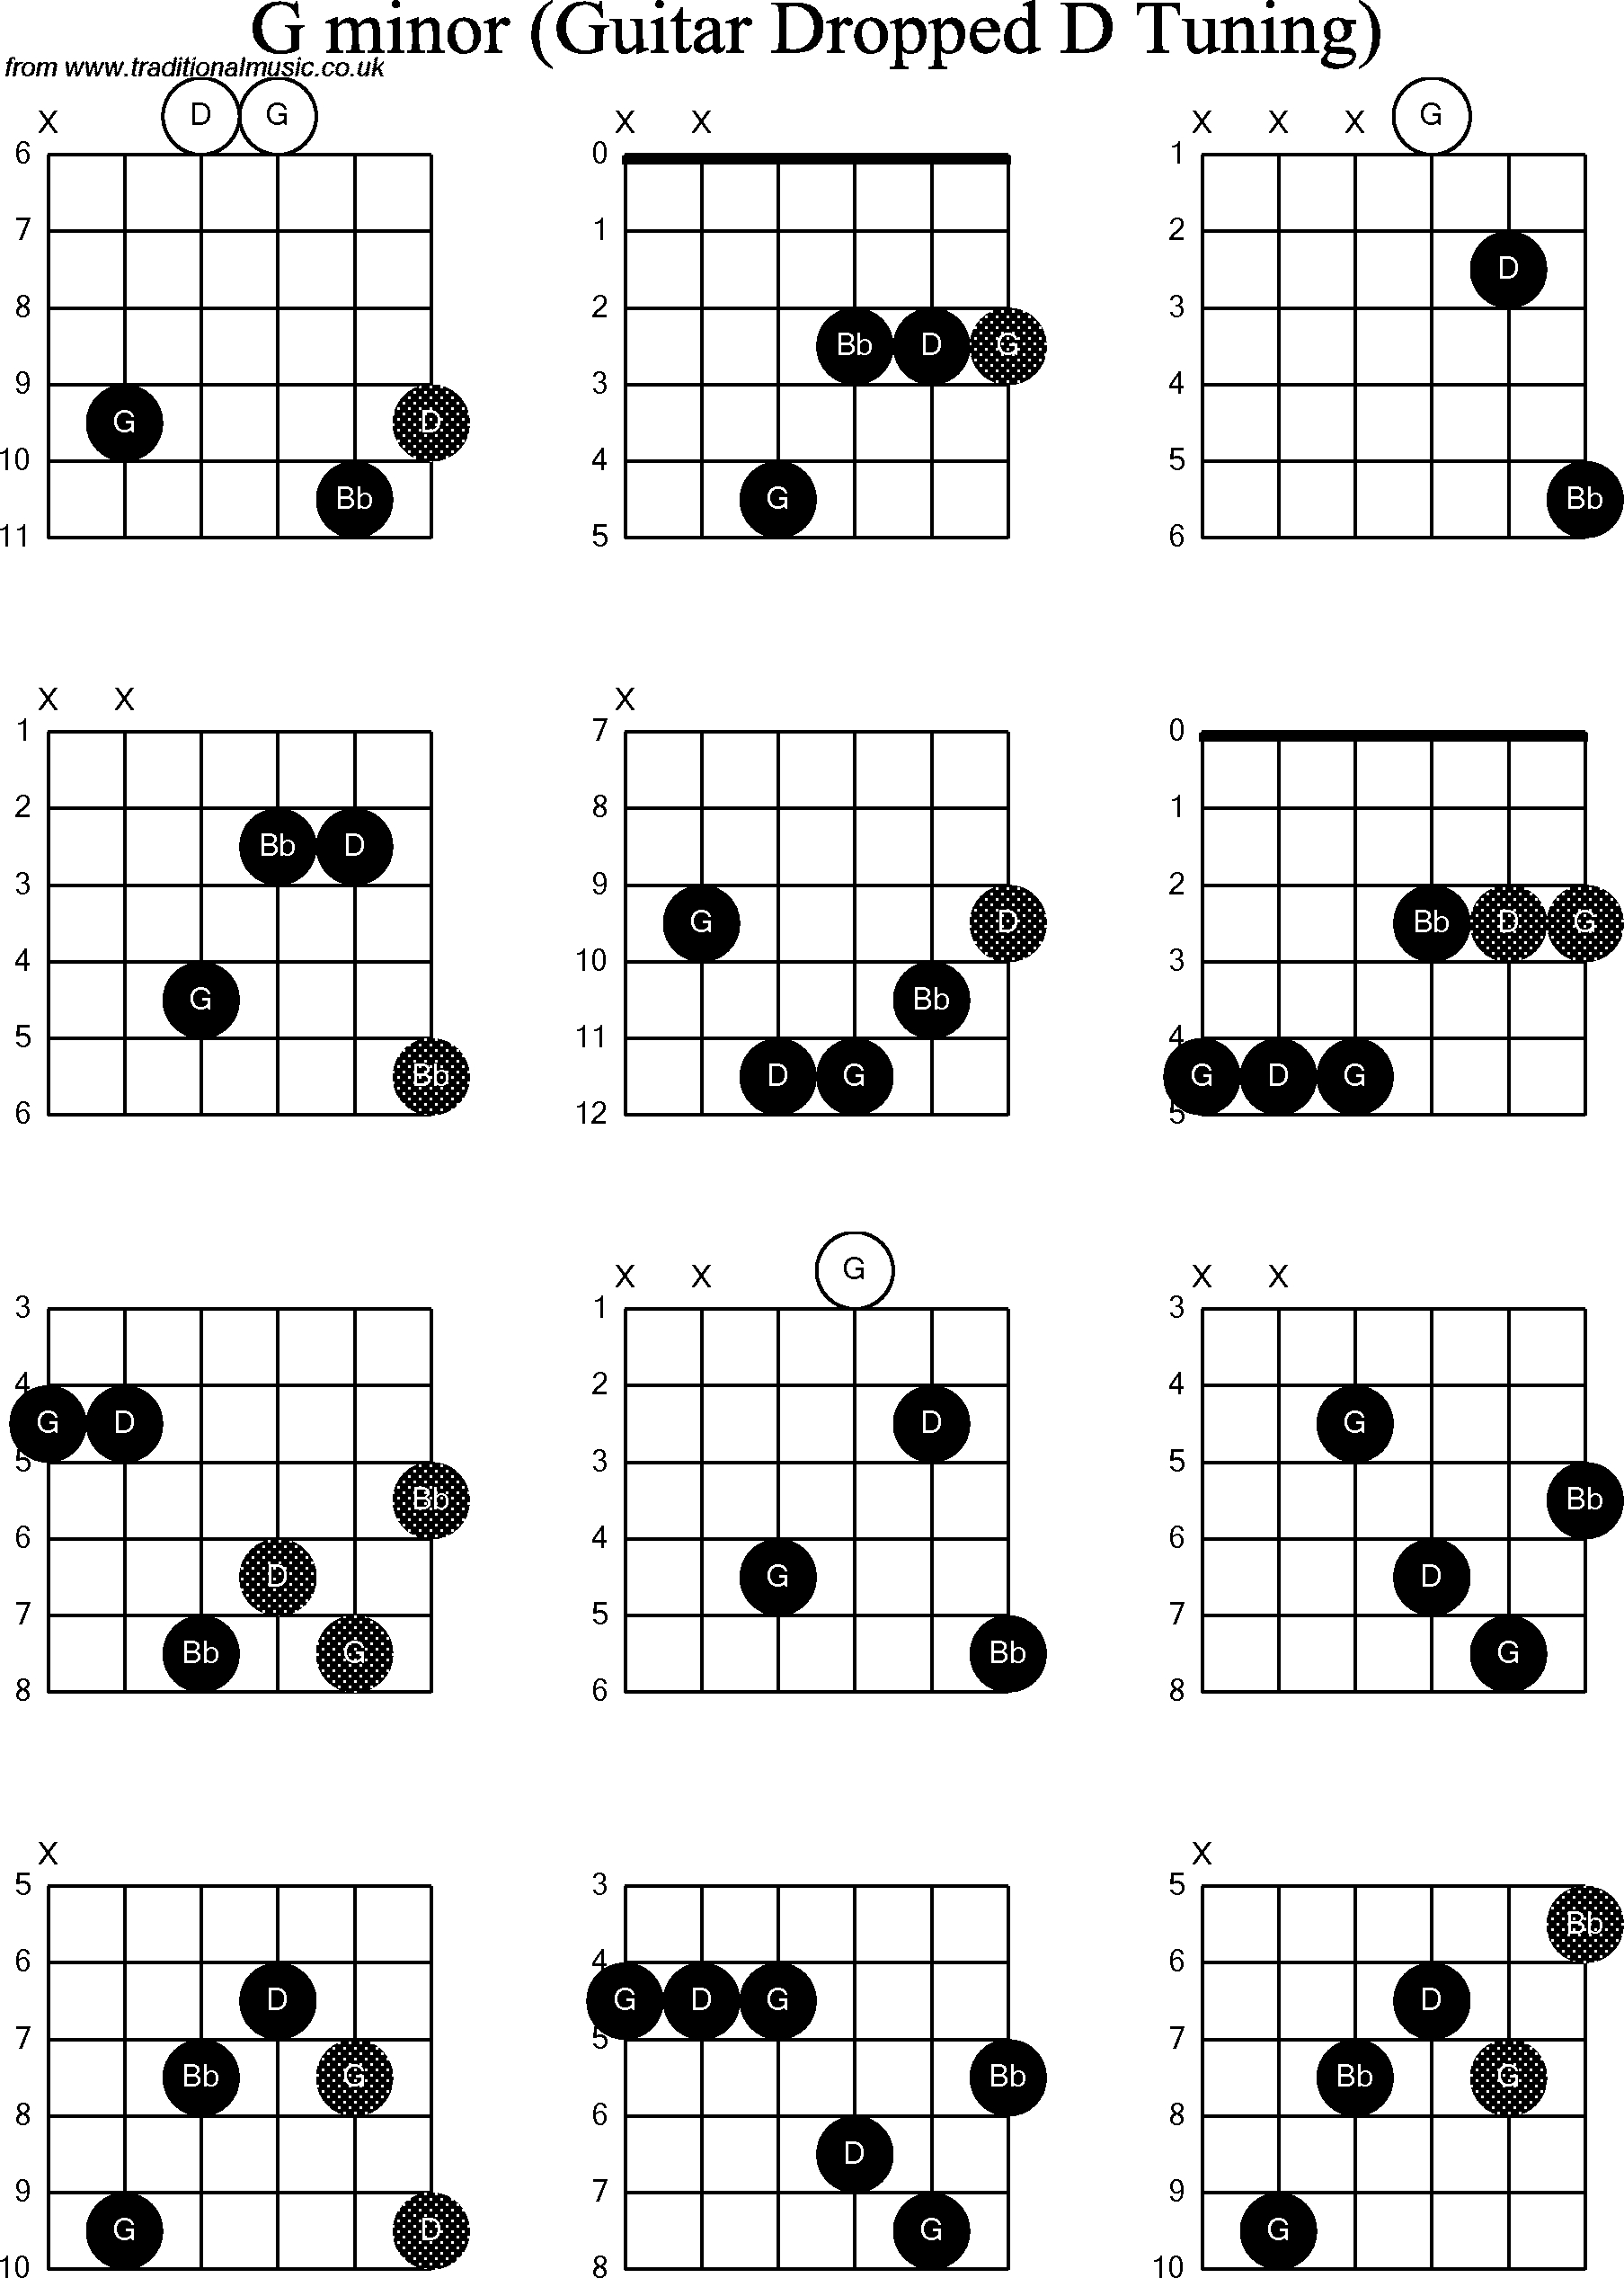 G Minor Chord Chord Diagrams For Dropped D Guitardadgbe G Minor